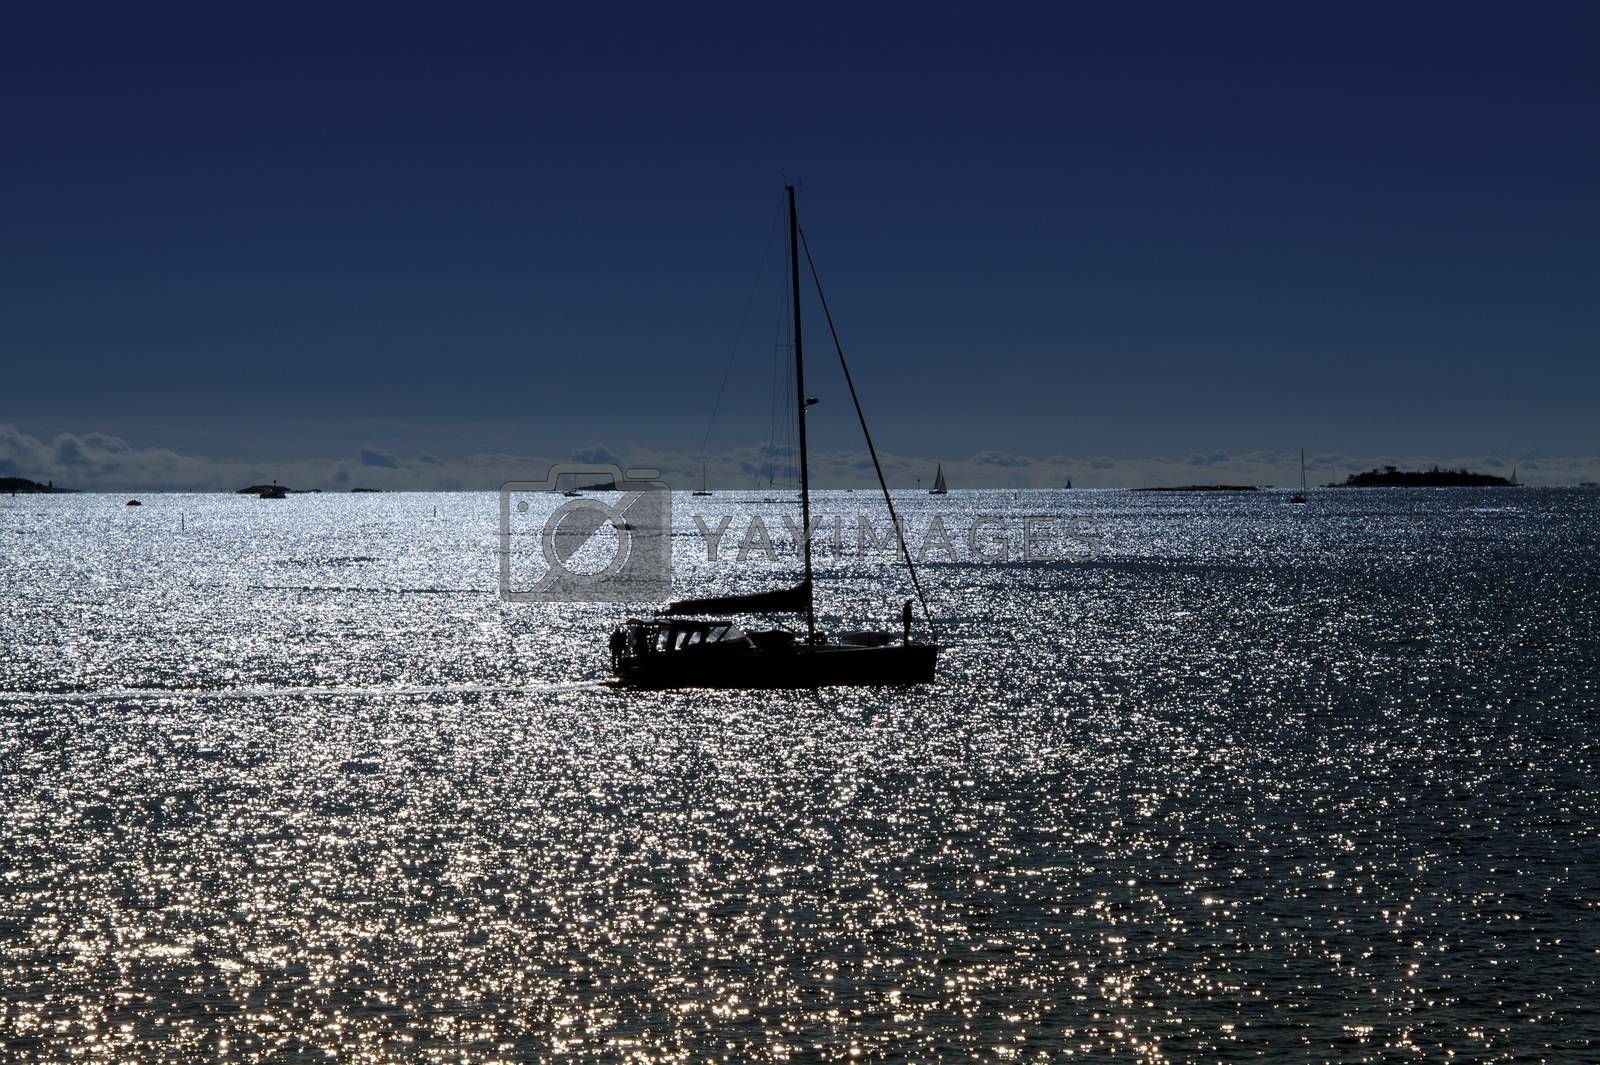 Sailboat on the sea in good weather. Horizon on the background.